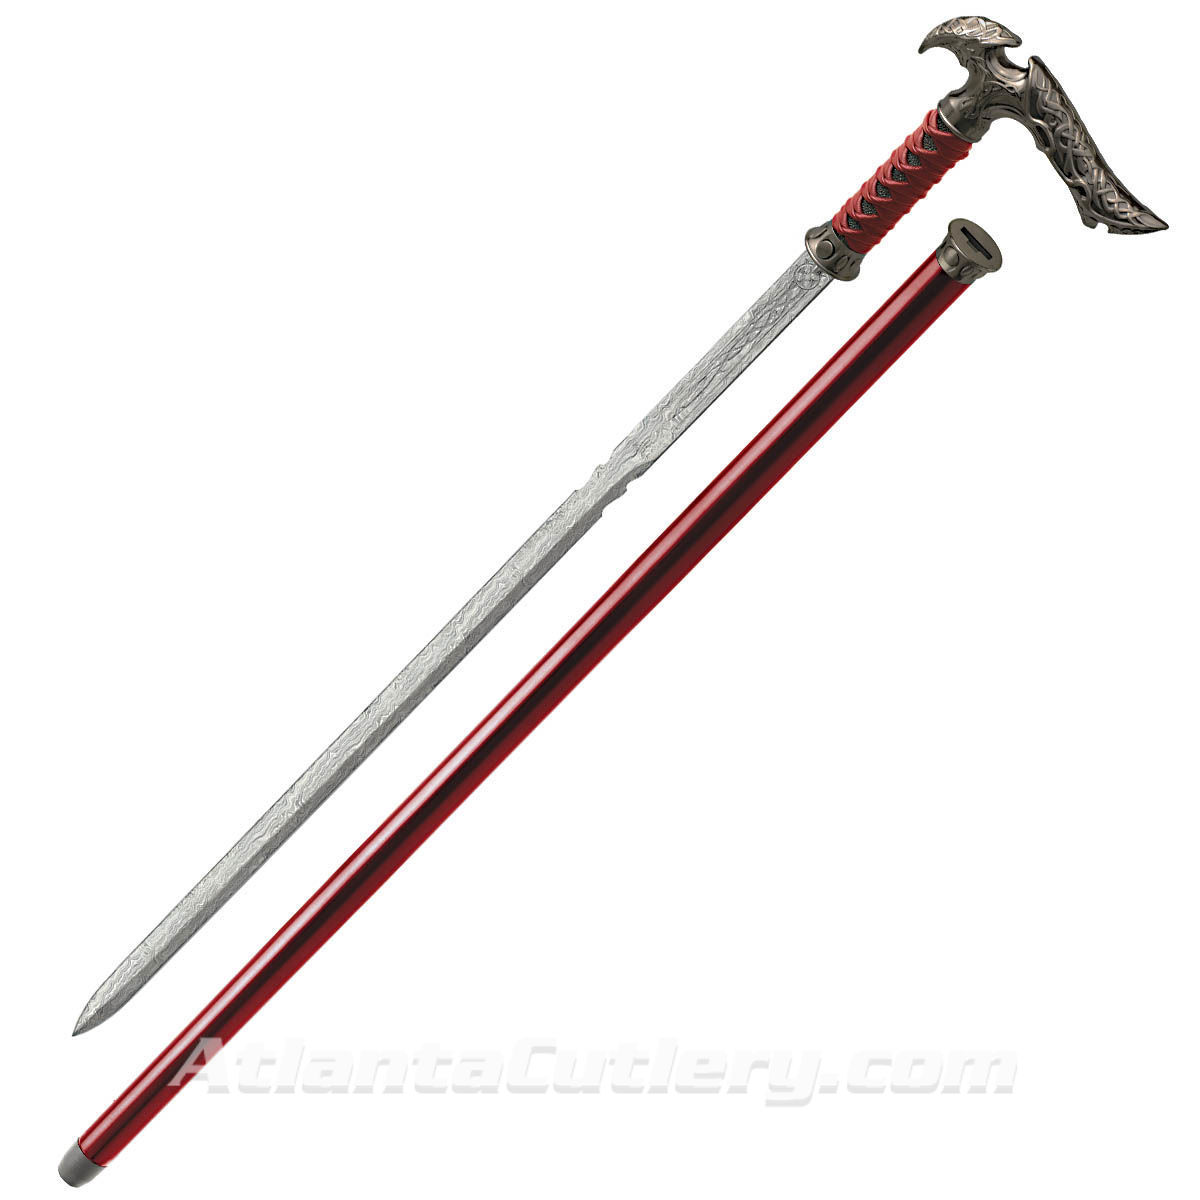 Kit Rae Axios Forged Sword Cane has Carbon Steel blade released with a push of the hidden button